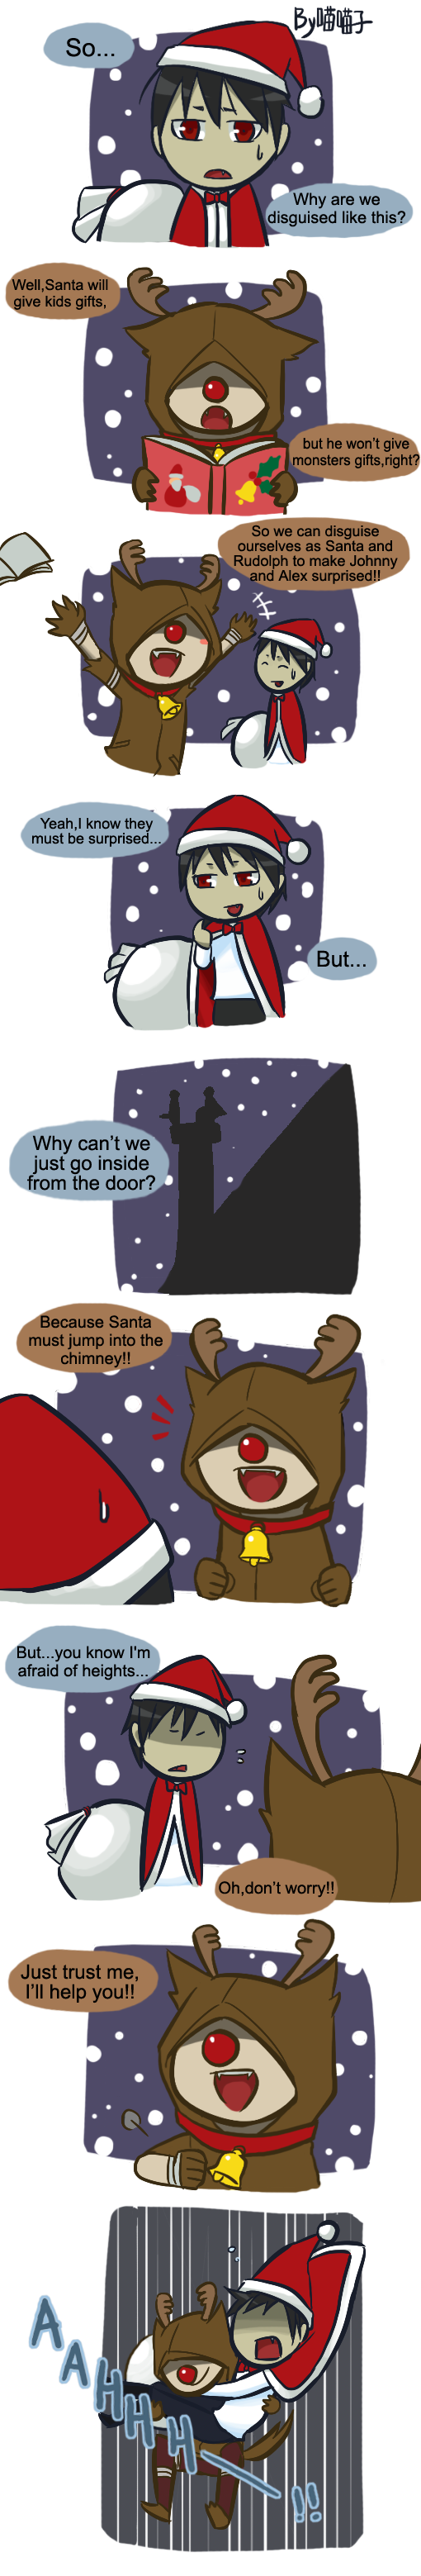 X'mas special comic 01 by aulauly7